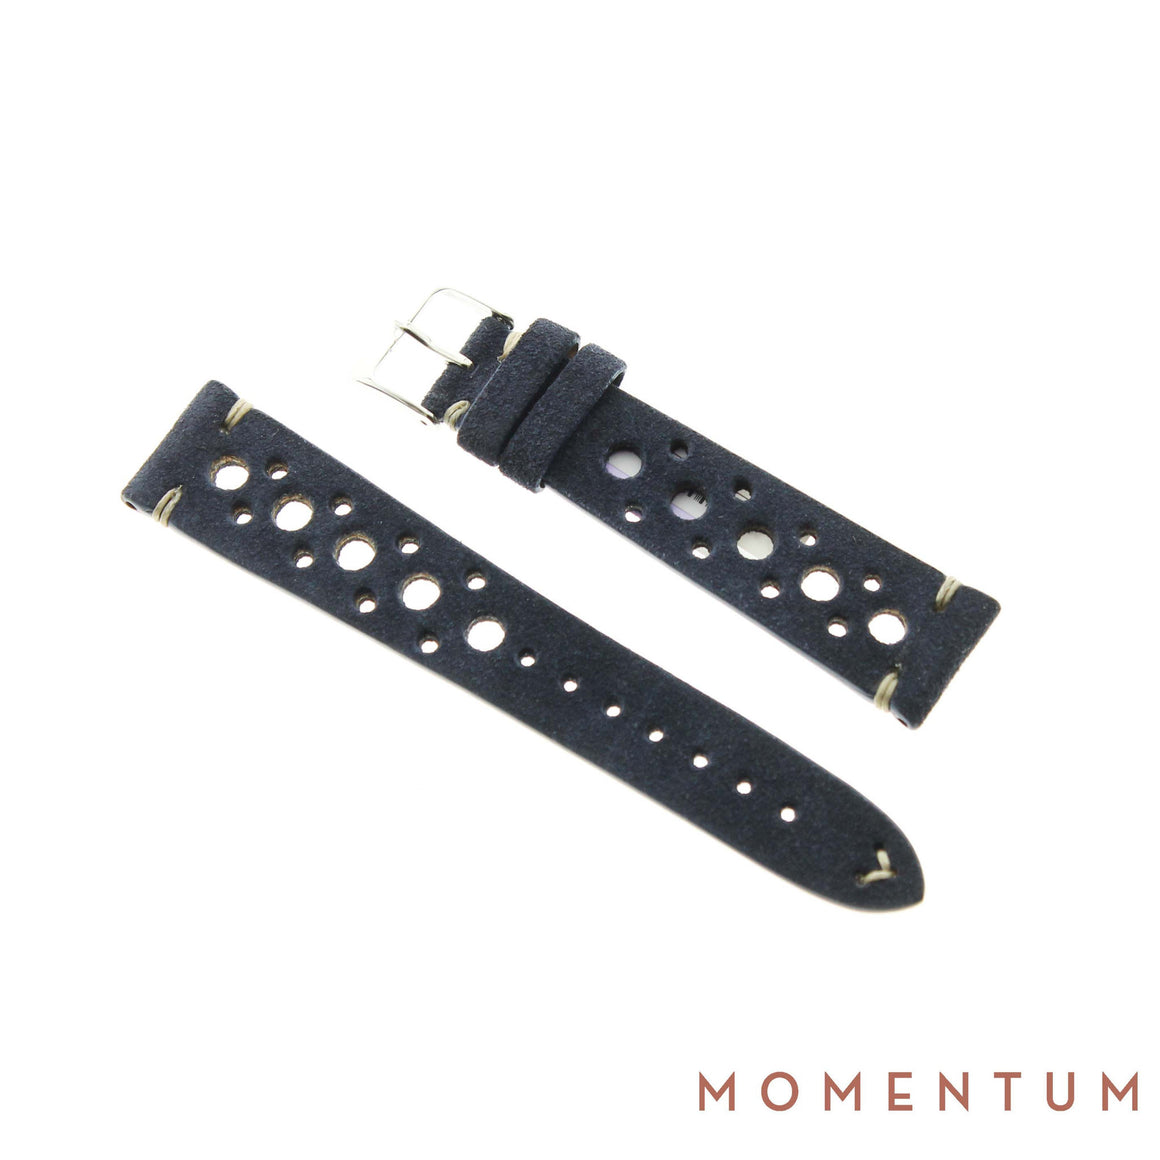 Vintage Strap - Dark Blue Suede with holes - Calf Leather - Momentum Dubai